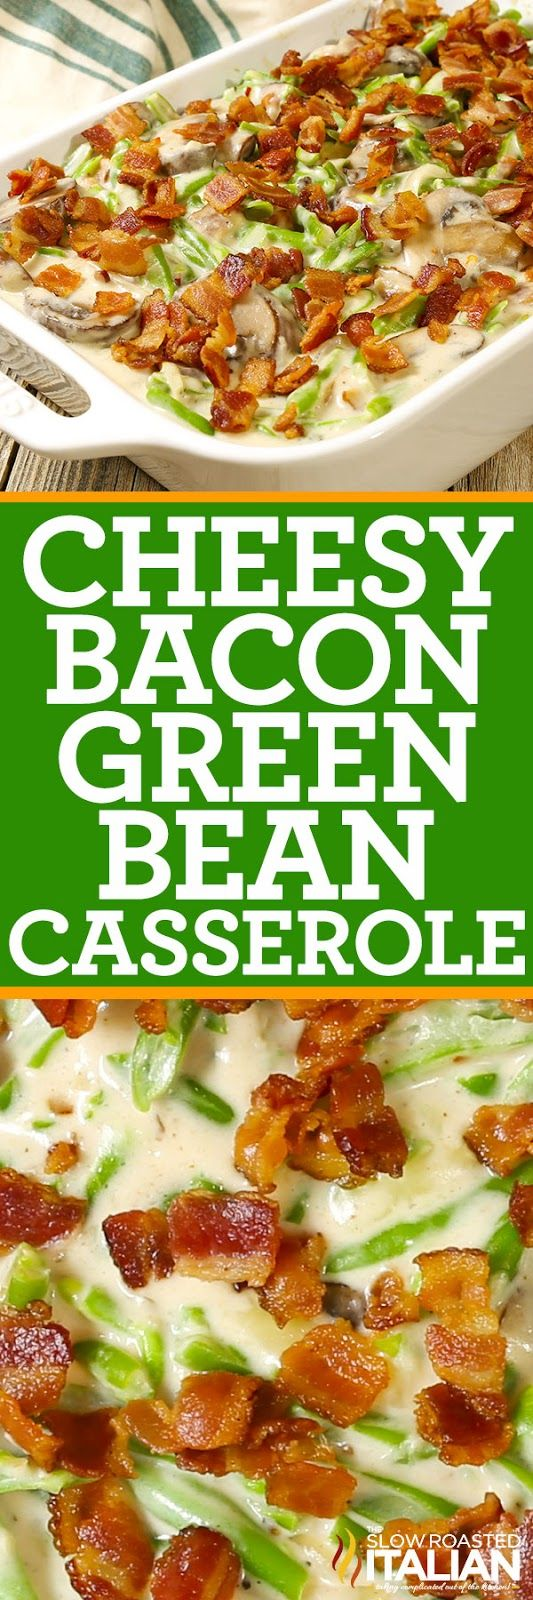 Cheesy Bacon Green Bean Casserole ain't your grandma's recipe! This modern take on the classic recipe features green beans in a rich and creamy bacon mushroom cheese sauce that will change Thanksgiving forever! Cooking from scratch has never been so easy.